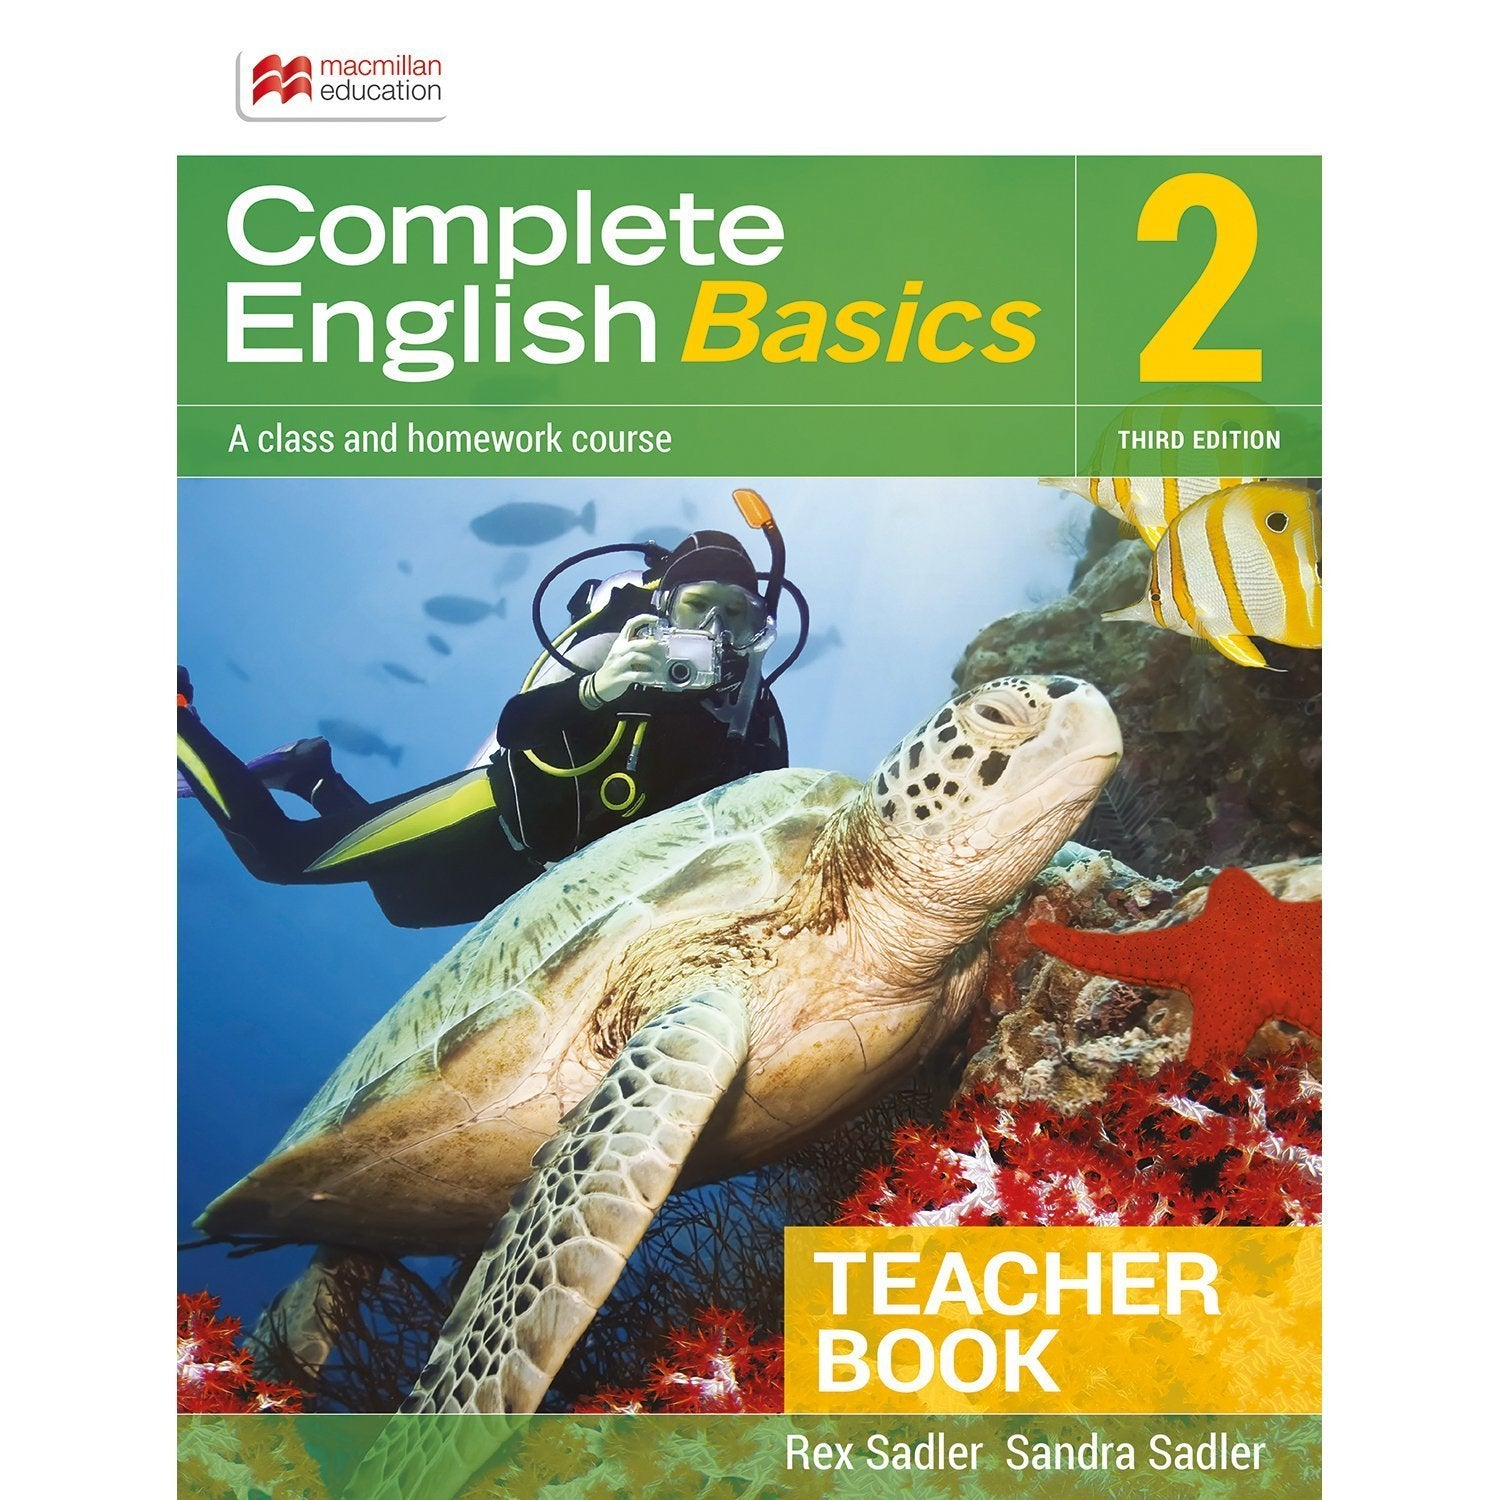 Complete English Basics 2 3E Teacher Book